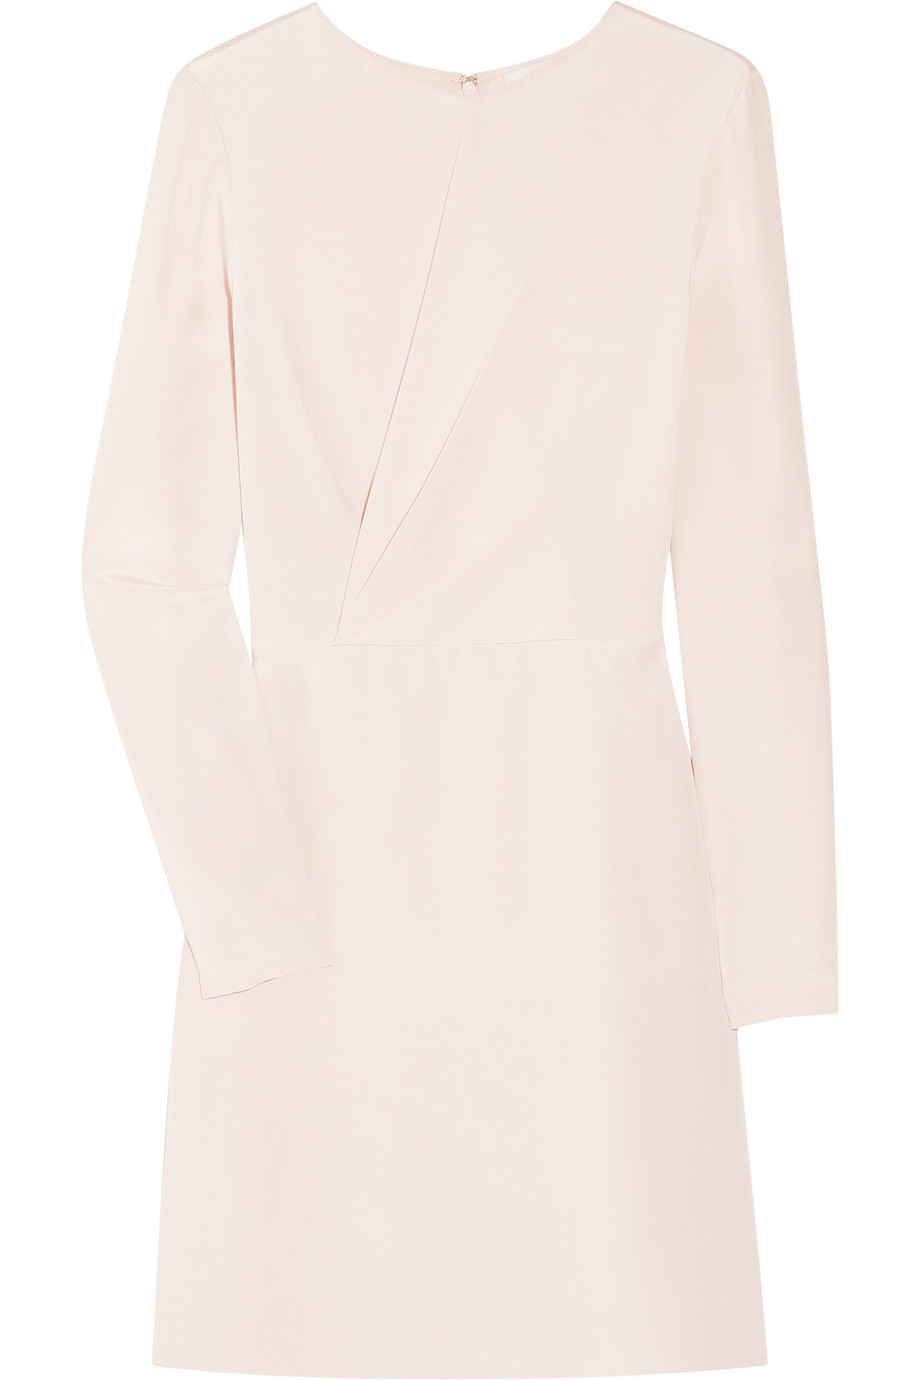 Silk crepe de chine wrap dress | 3.1 Phillip Lim | THE OUTNET